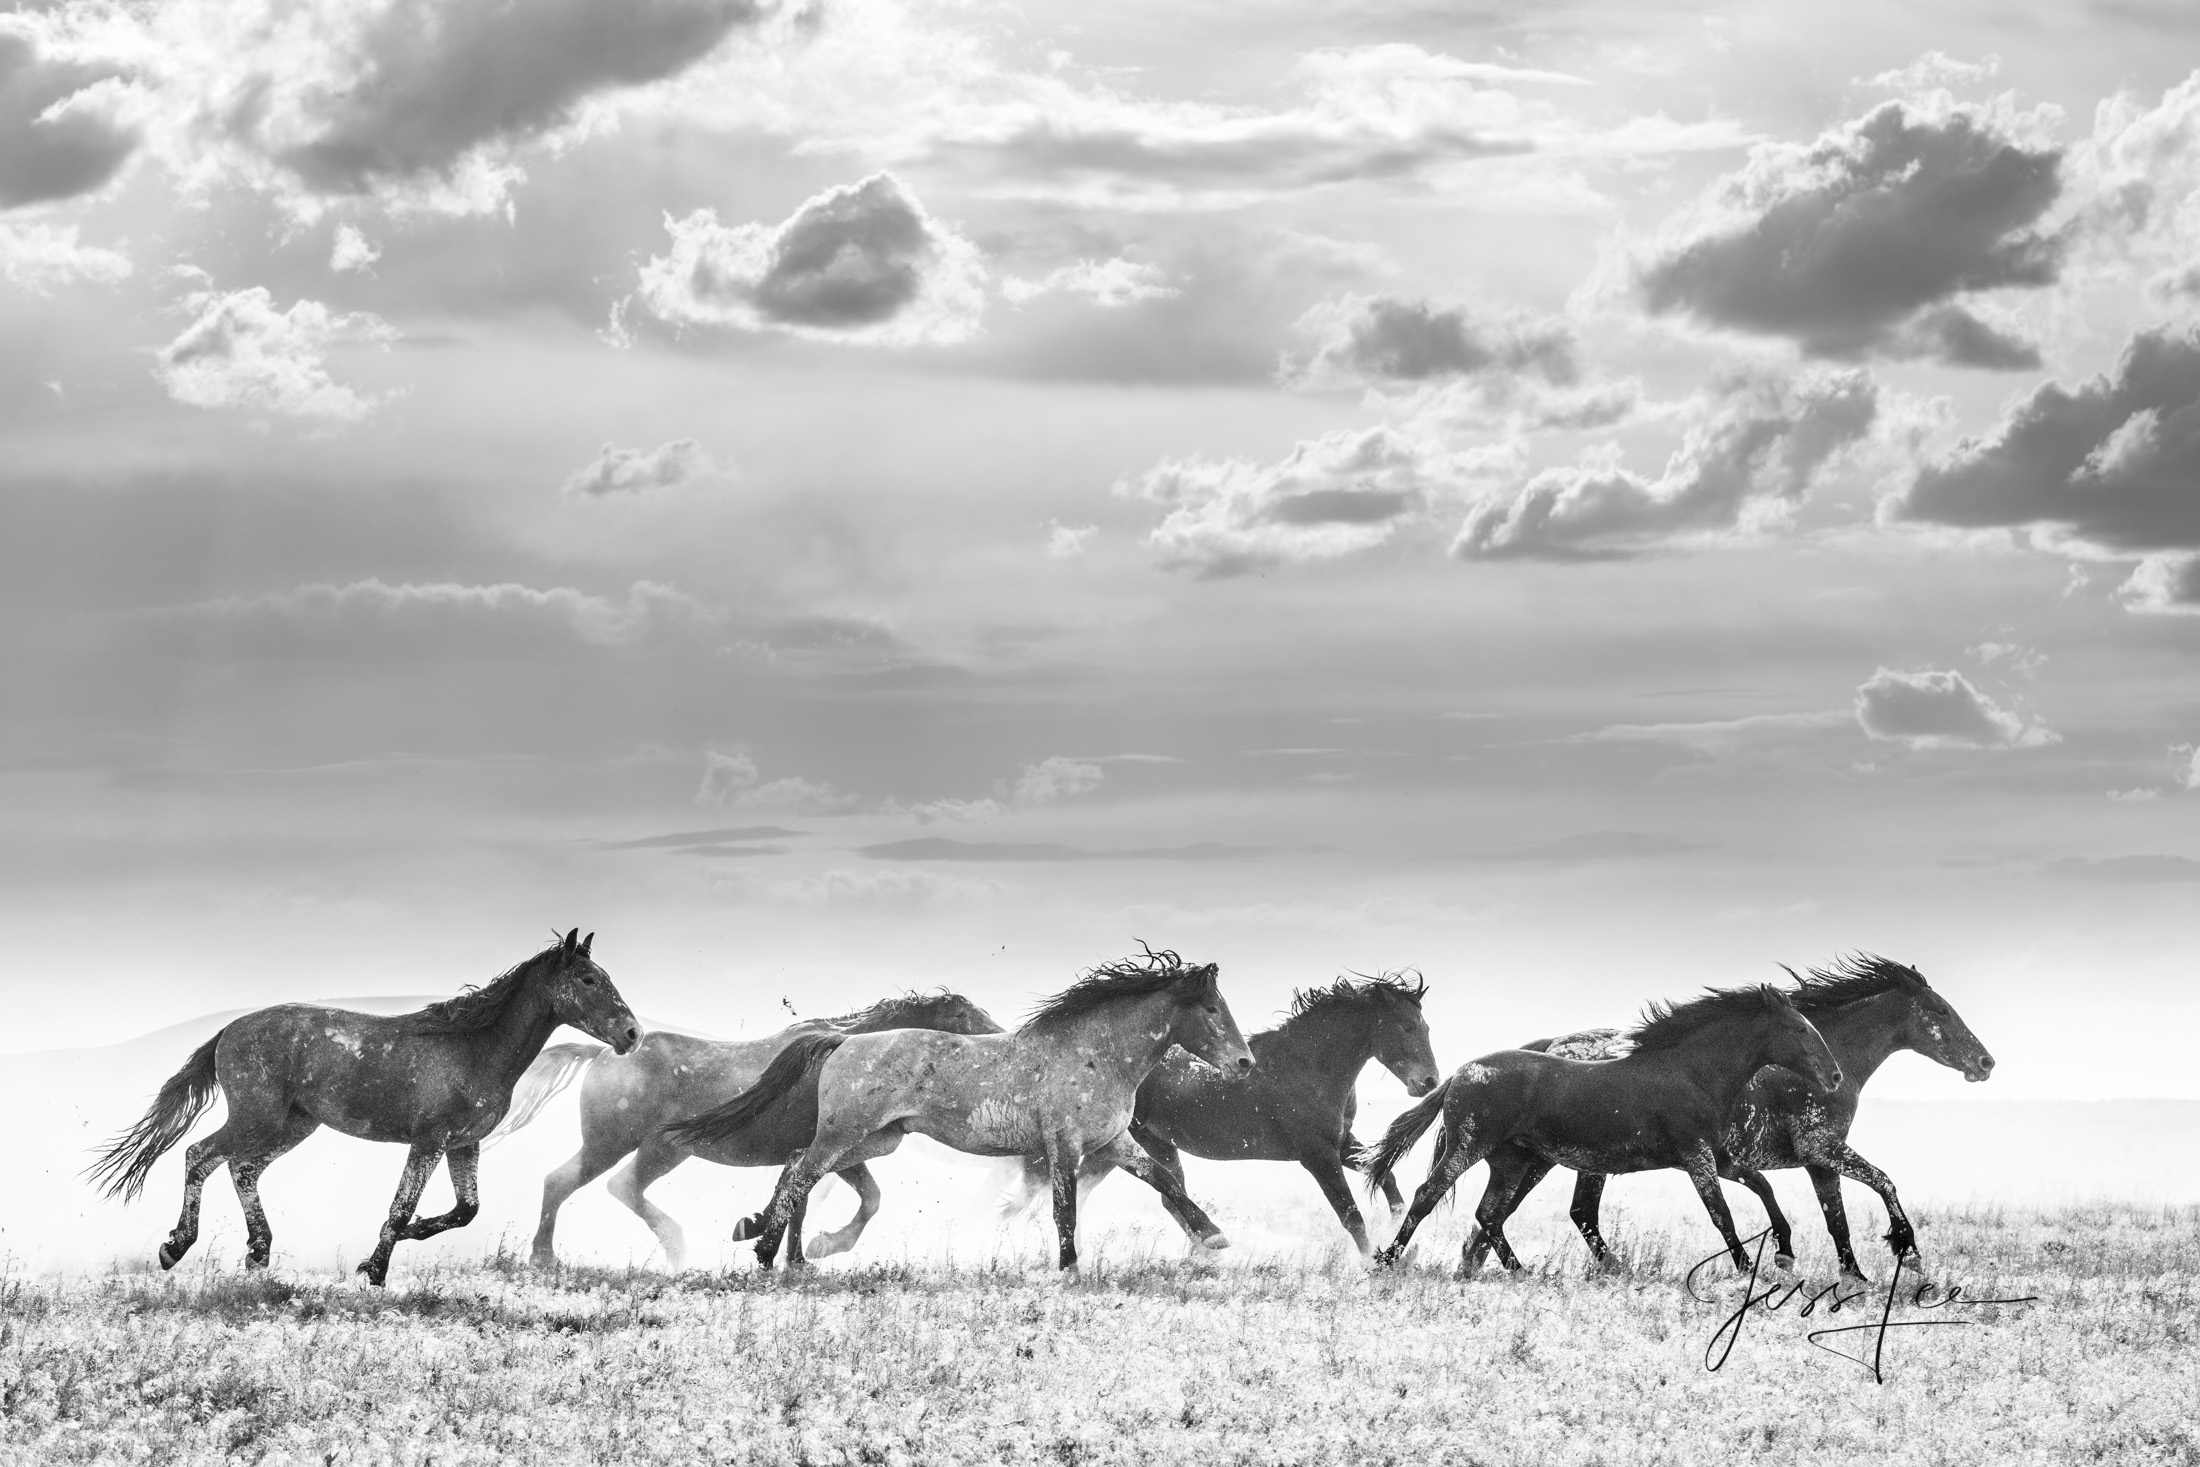 Wild Horse Freedom. Running Mustangs, Fine Art Limited Edition Photography Print from the Wild Horse Photography gallery.